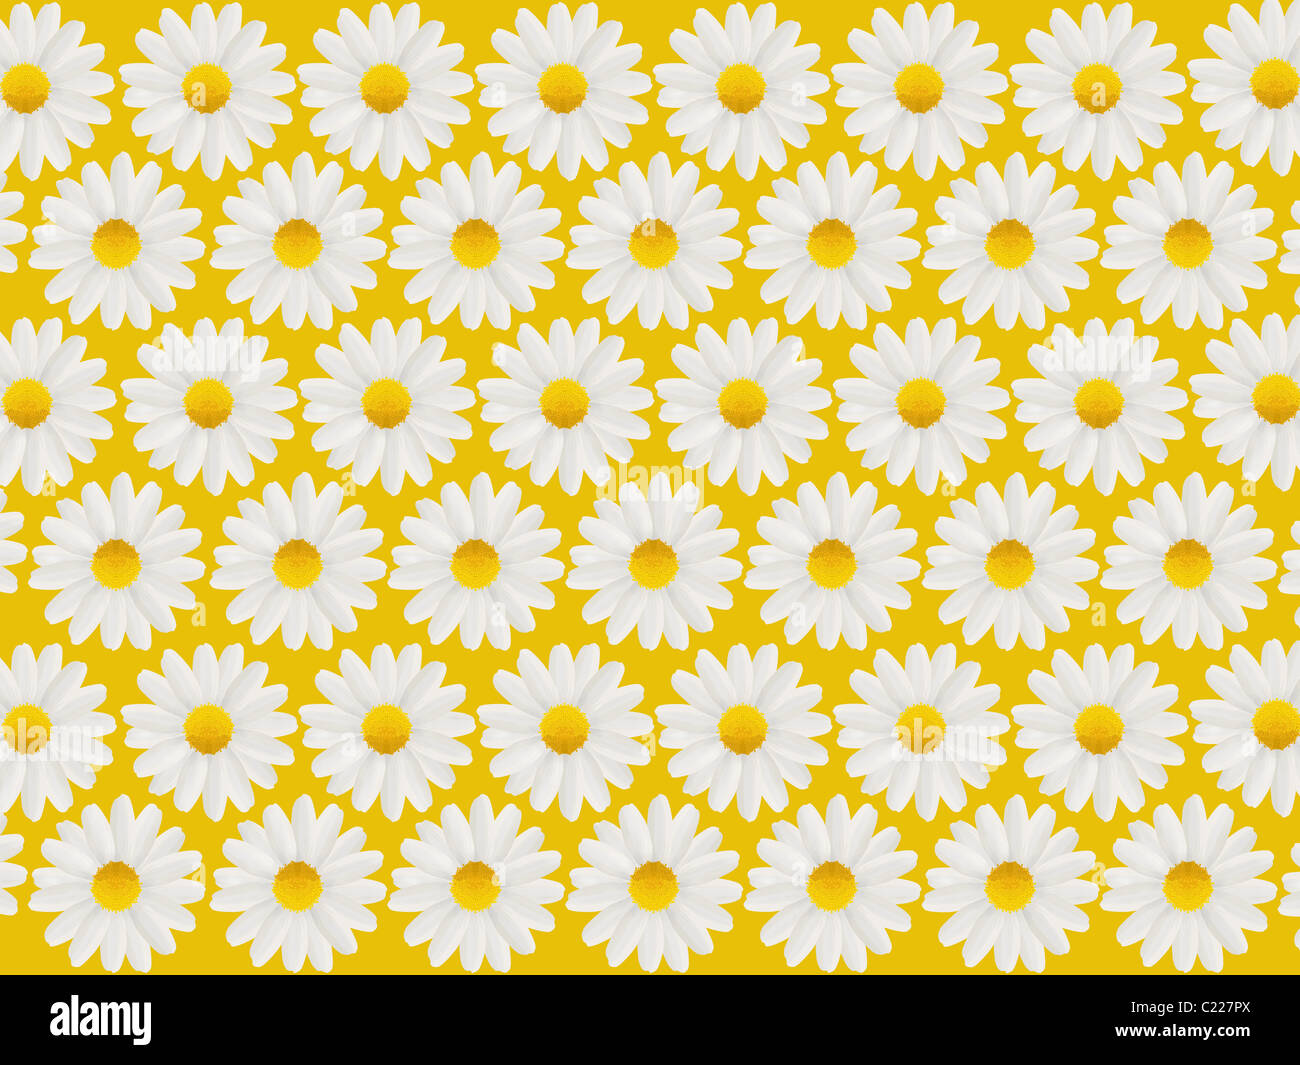 mothers day card with white daisies in a pattern isolated